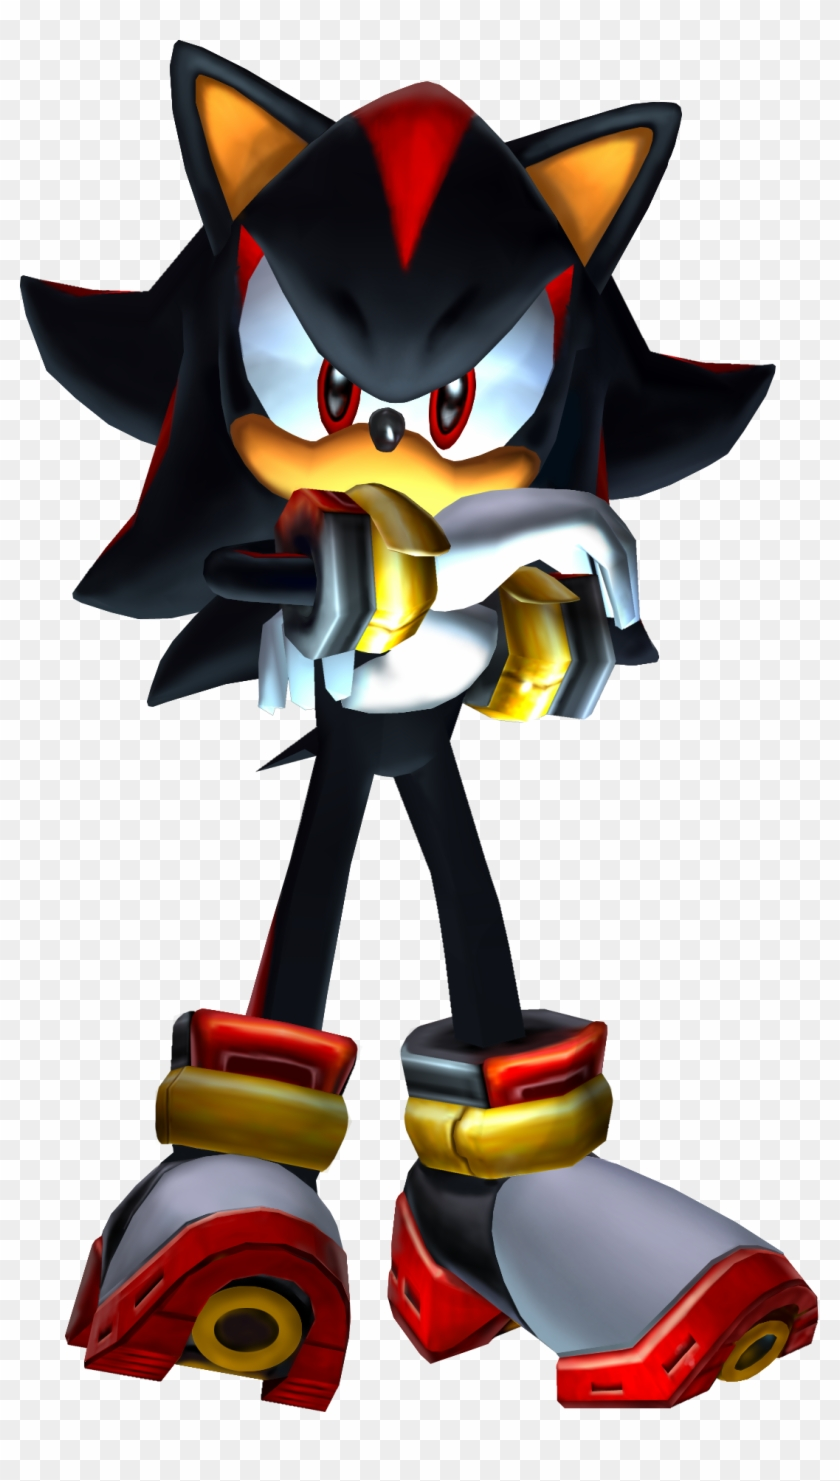 Shadow The Hedgehog Sonic Adventure 2 Shadow Free Transparent Png Clipart Images Download